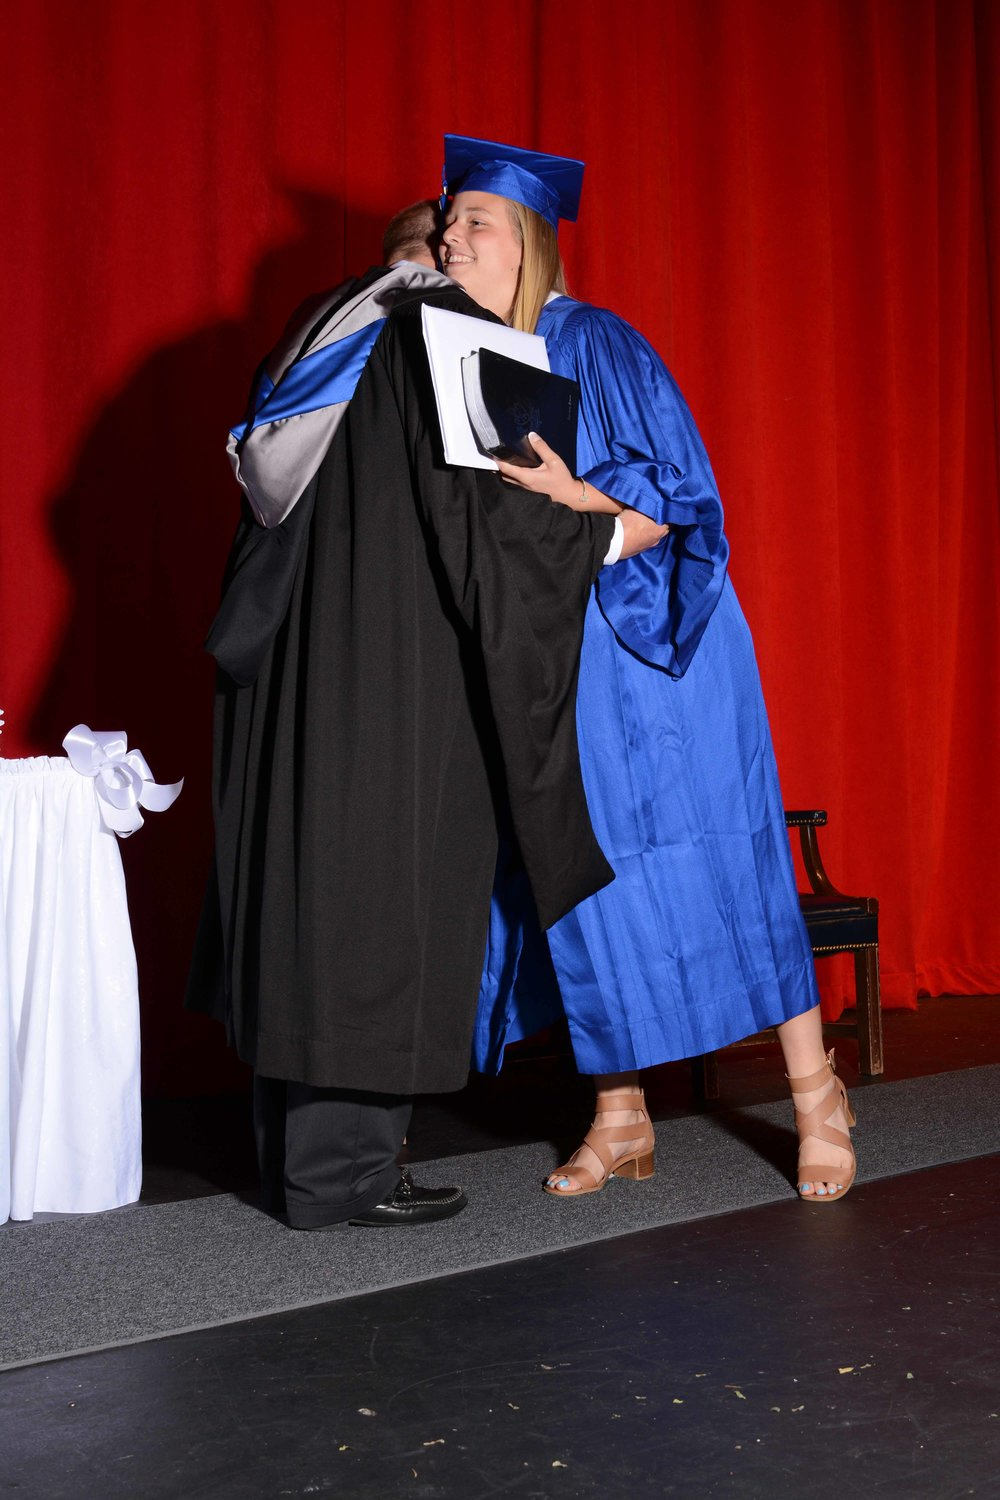 May15 HardingGraduation107.jpg